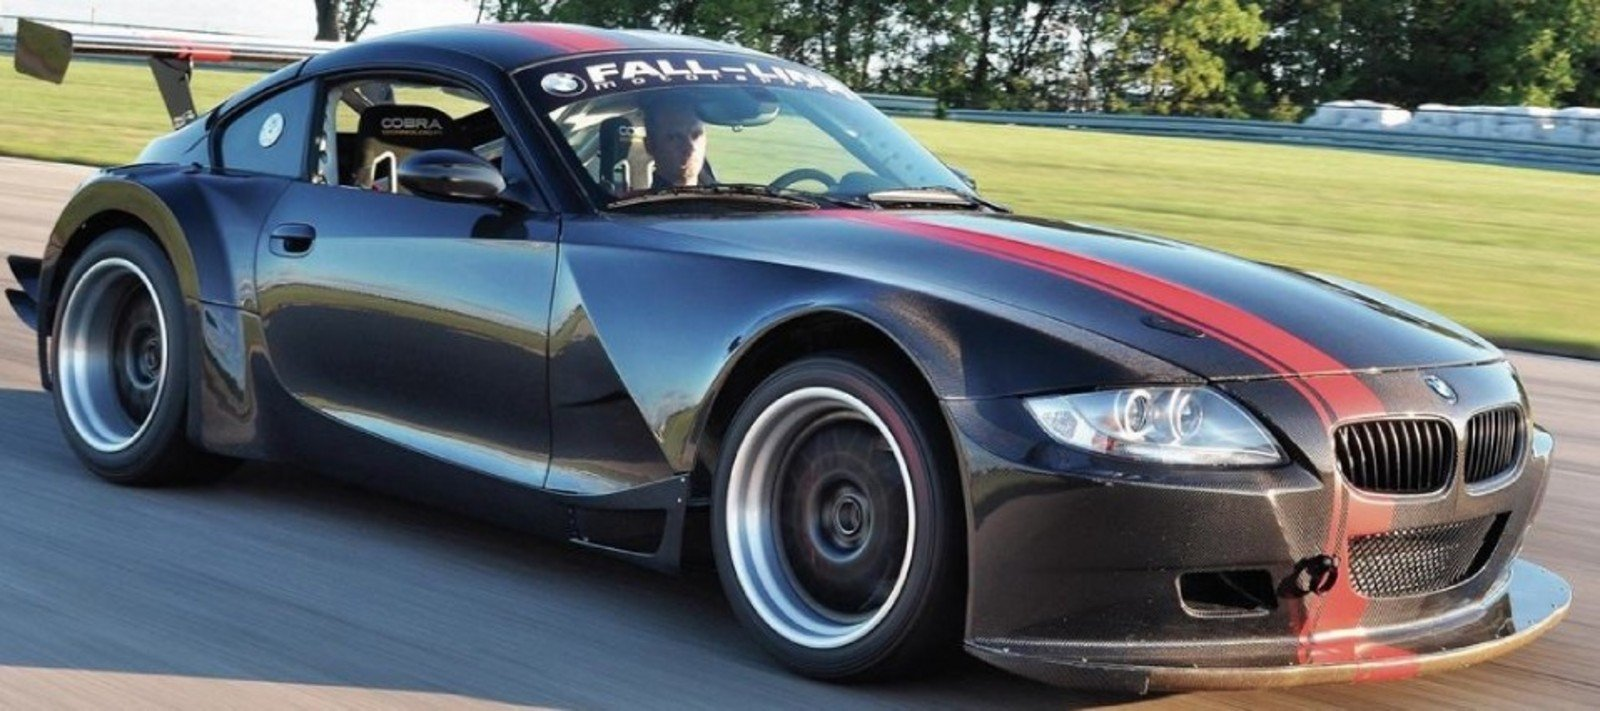 2007 Bmw M Coupe With Full Carbon Fiber Body Kit For Sale